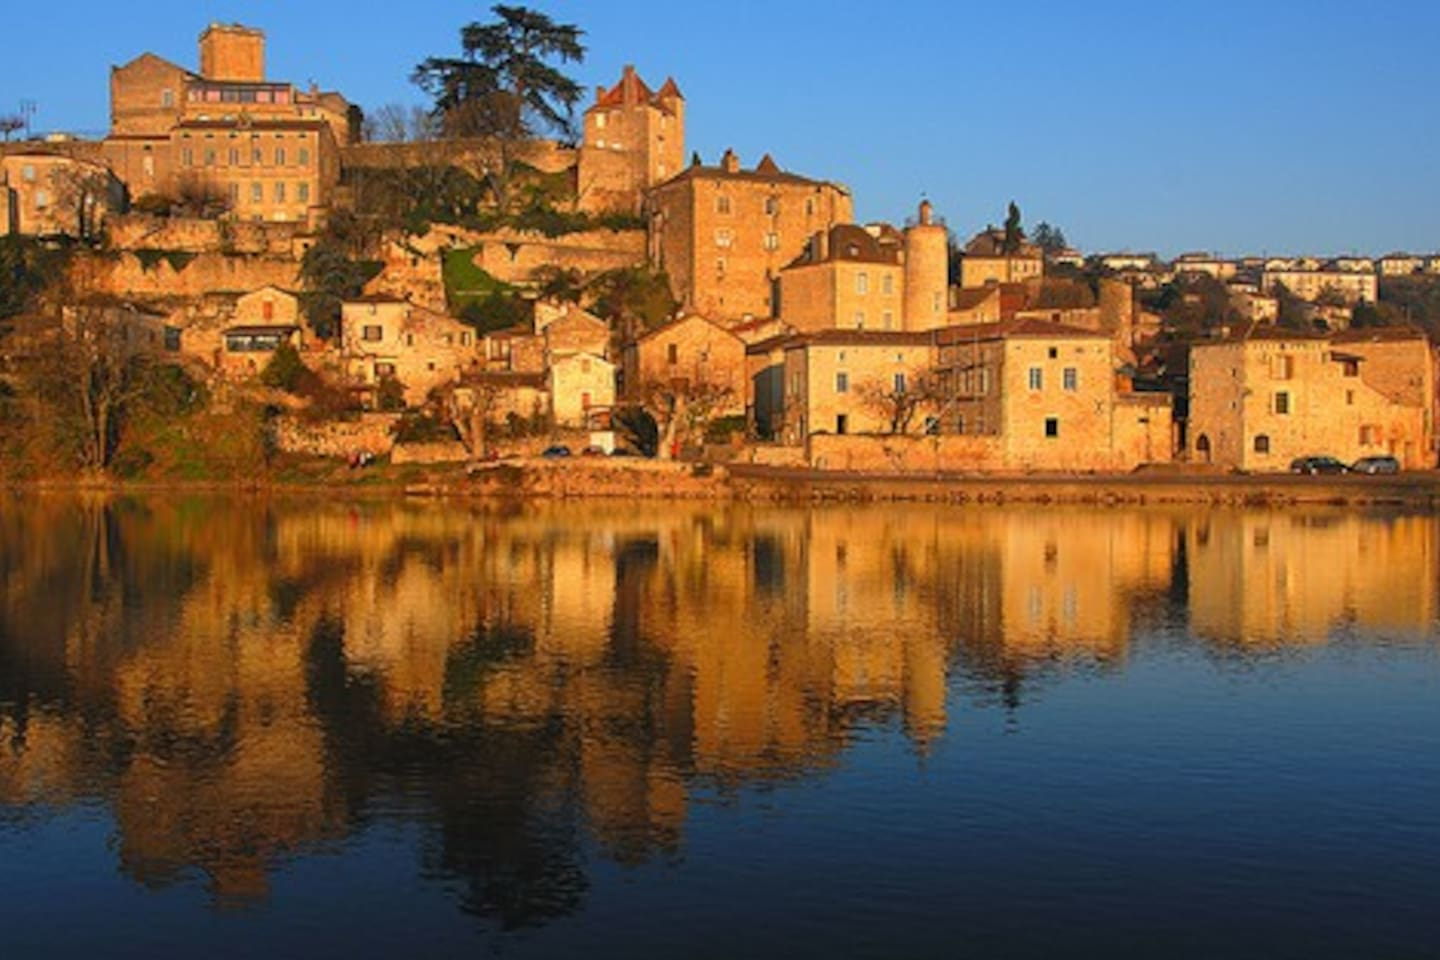 Puy L'Eveque, vibrant and enchanting